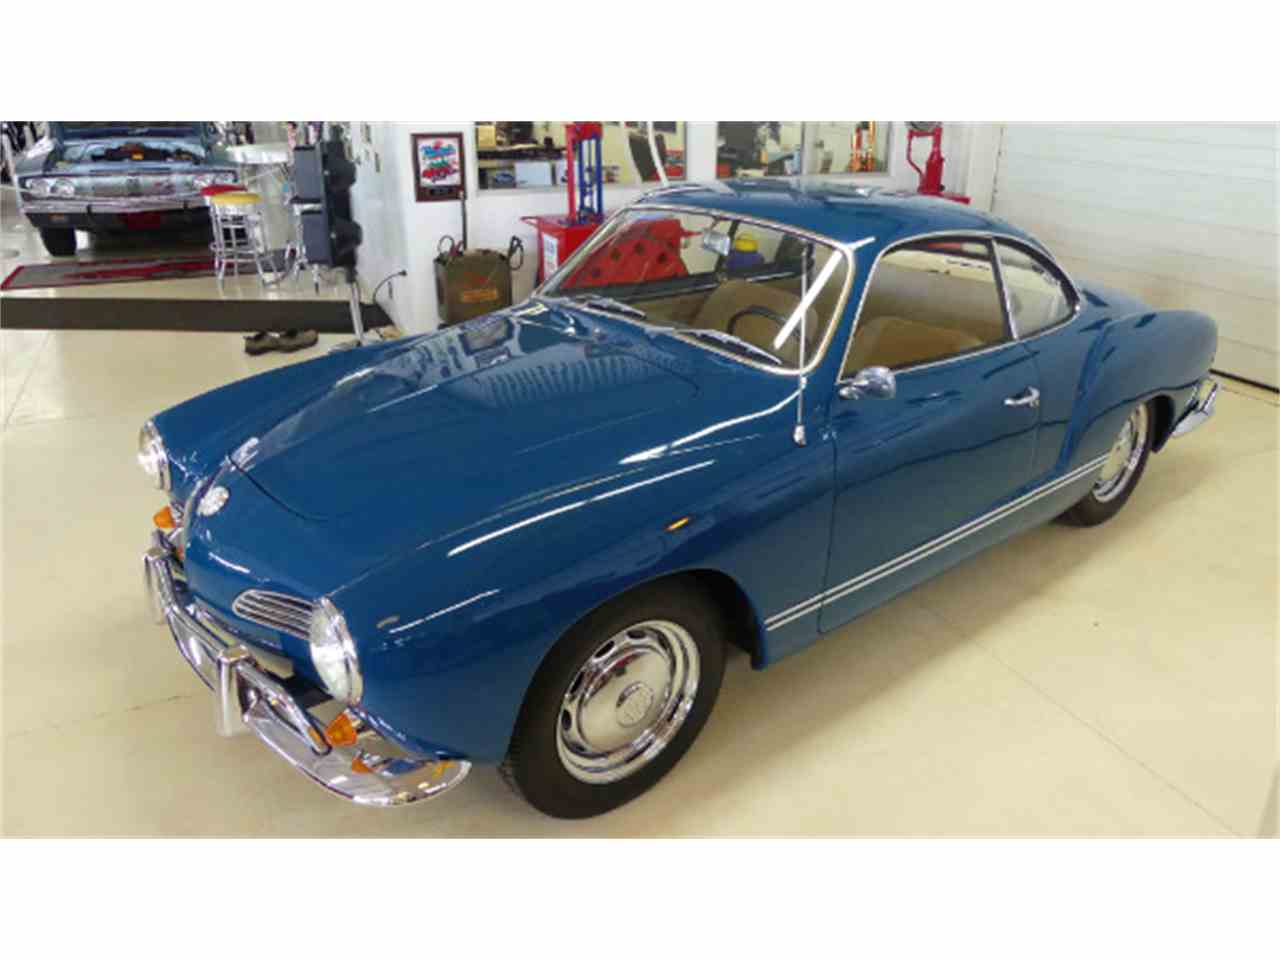 1966 Volkswagen Karmann Ghia For Sale Classiccars Com Cc 984879